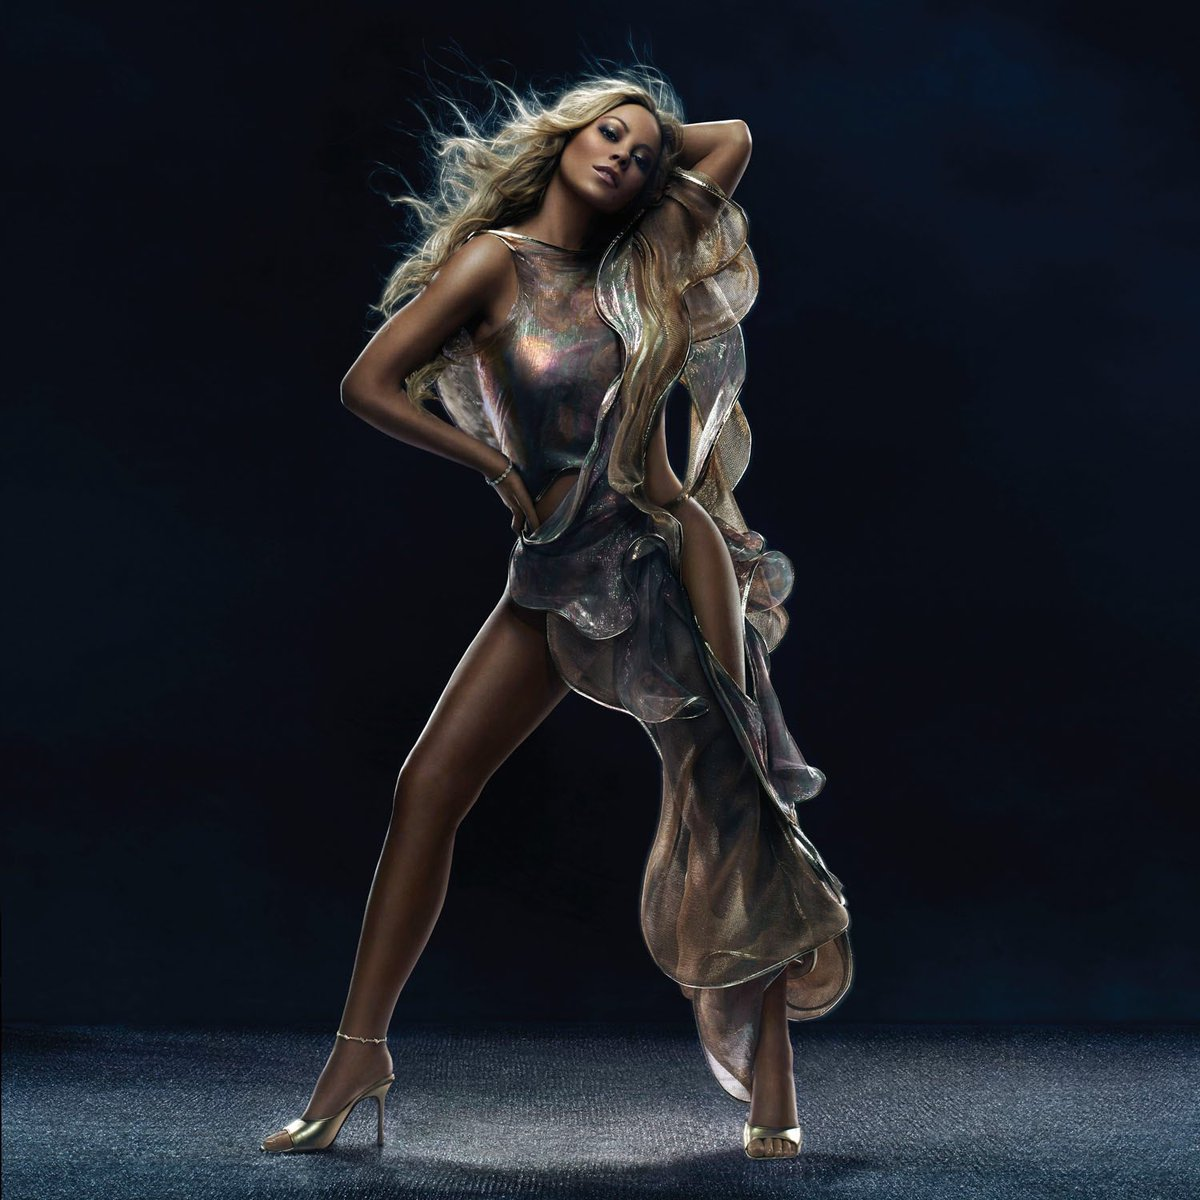 #fbf The Emancipation of Mimi ???? 4.12.05 ???? #lambily what's your favorite song from this album? https://t.co/x7eG77cBQh